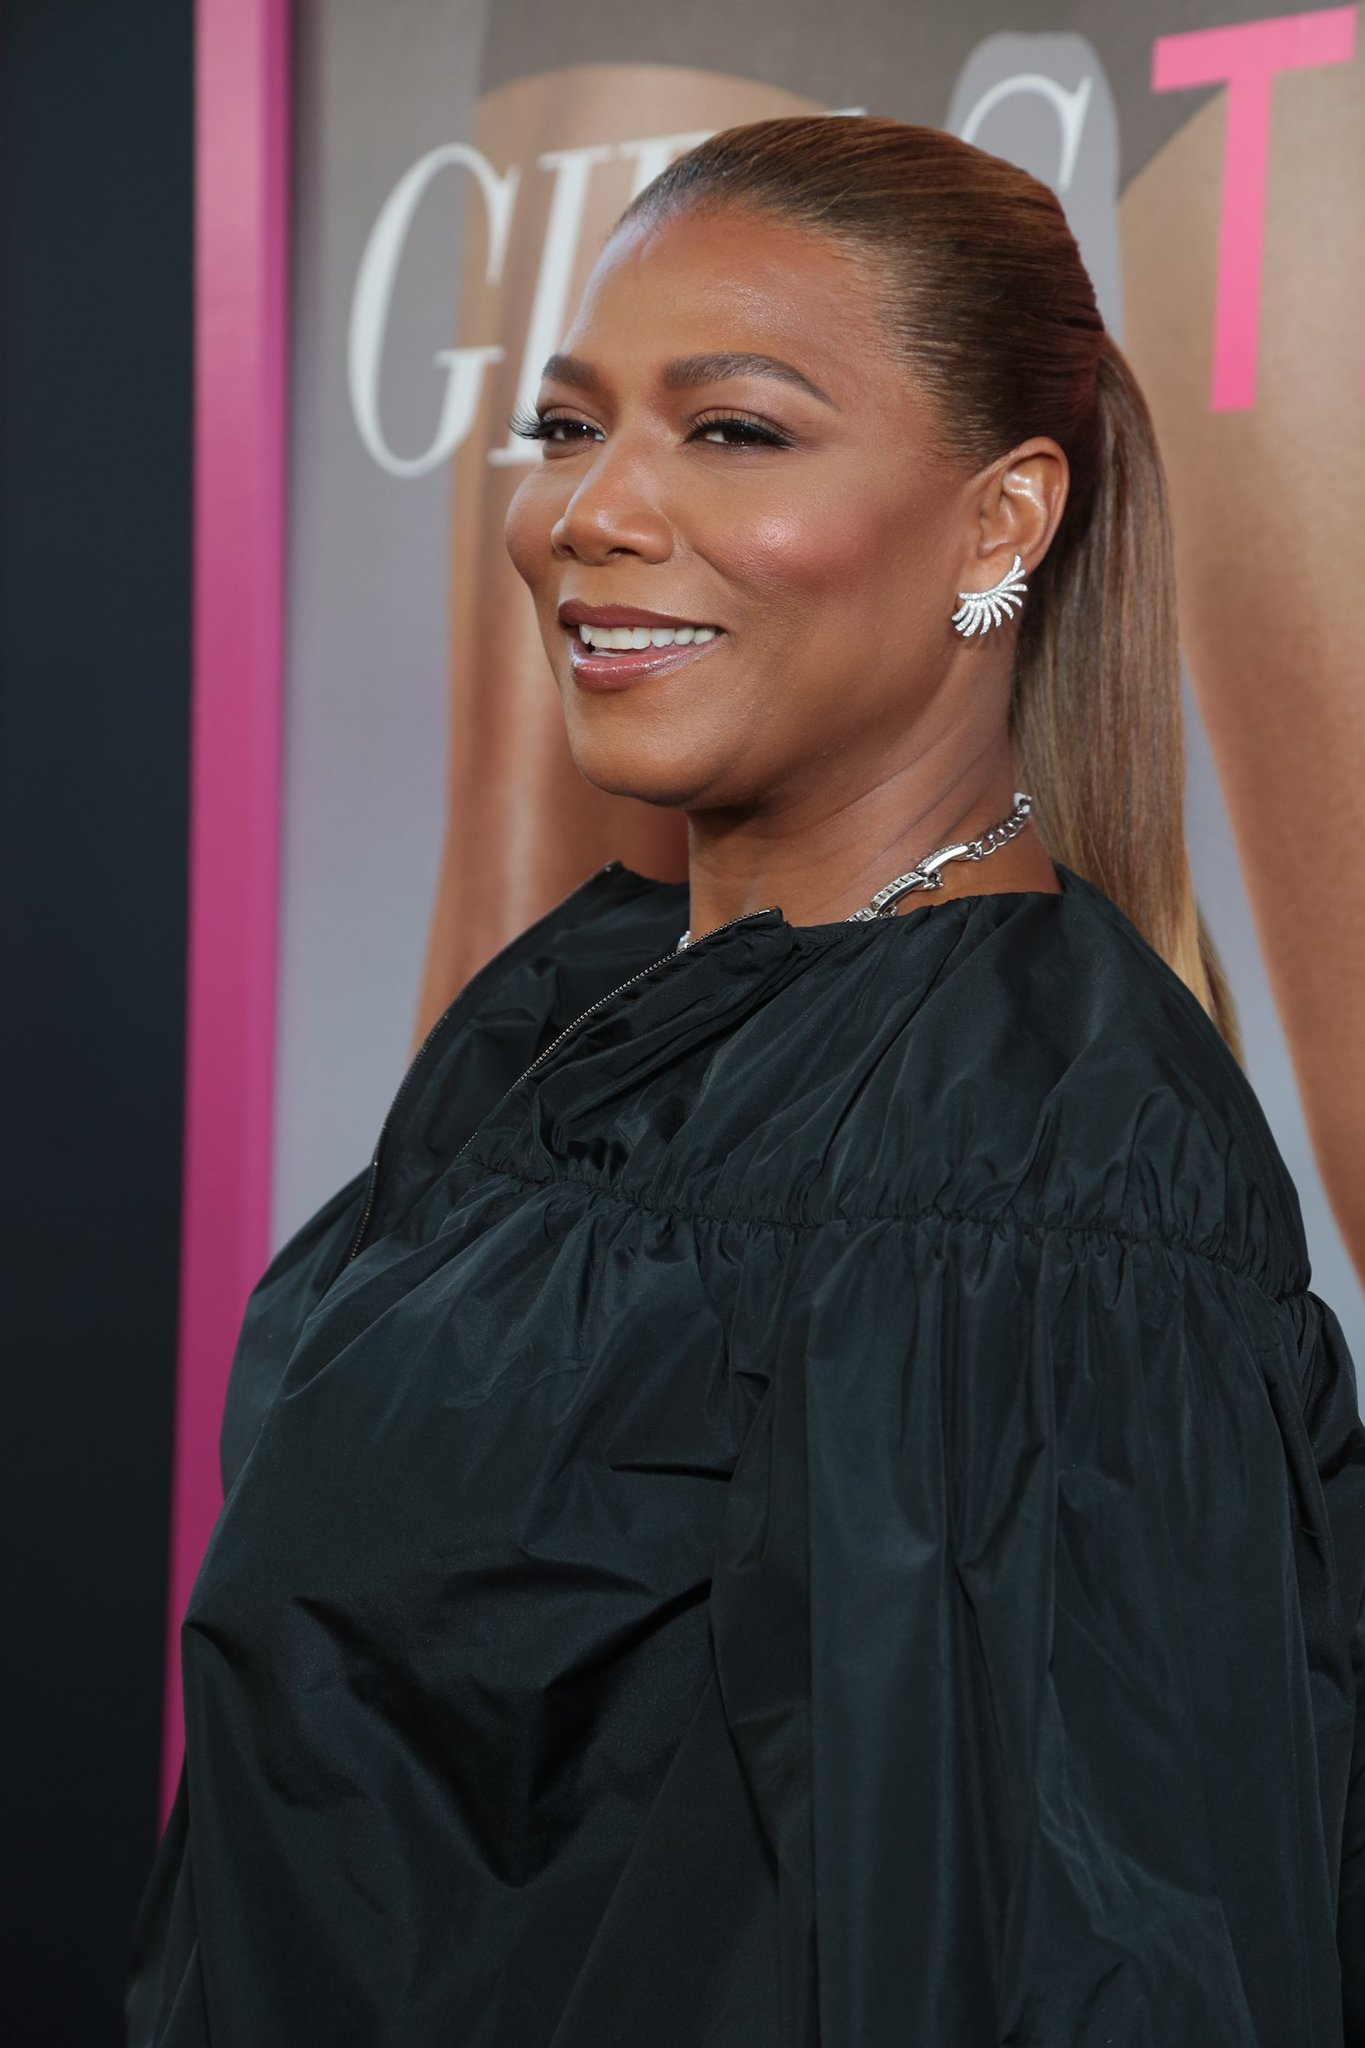 Queen Latifah On Twitter Thank You For All The Birthday Wishes Its Been An Amazing Year And